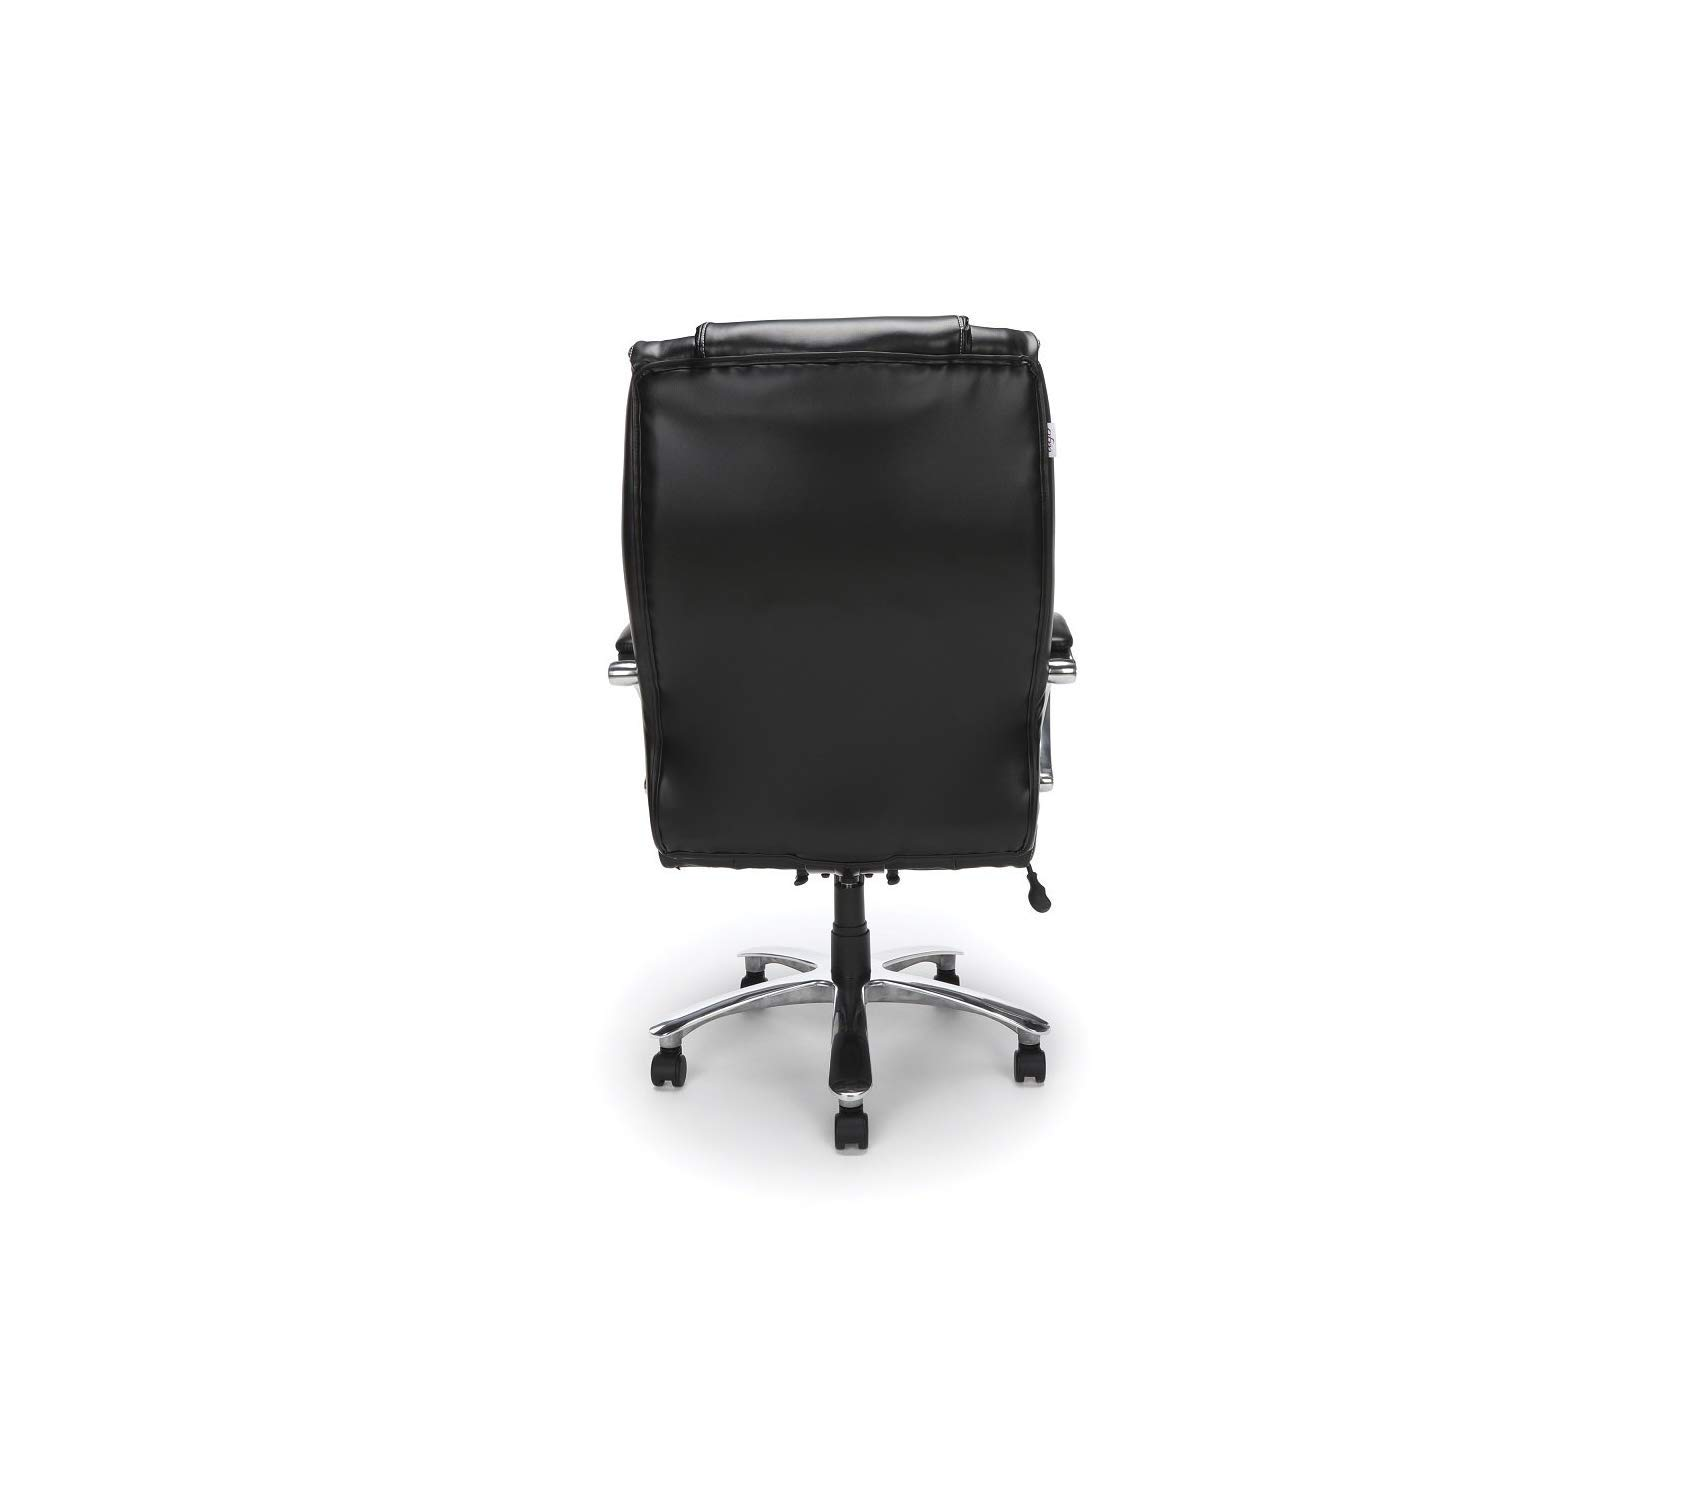 Оfm Avenger Series Big and Tall Leather Executive Chair - Black Computer Chair with Arms, Black/Chrome by Оfm (Image #4)